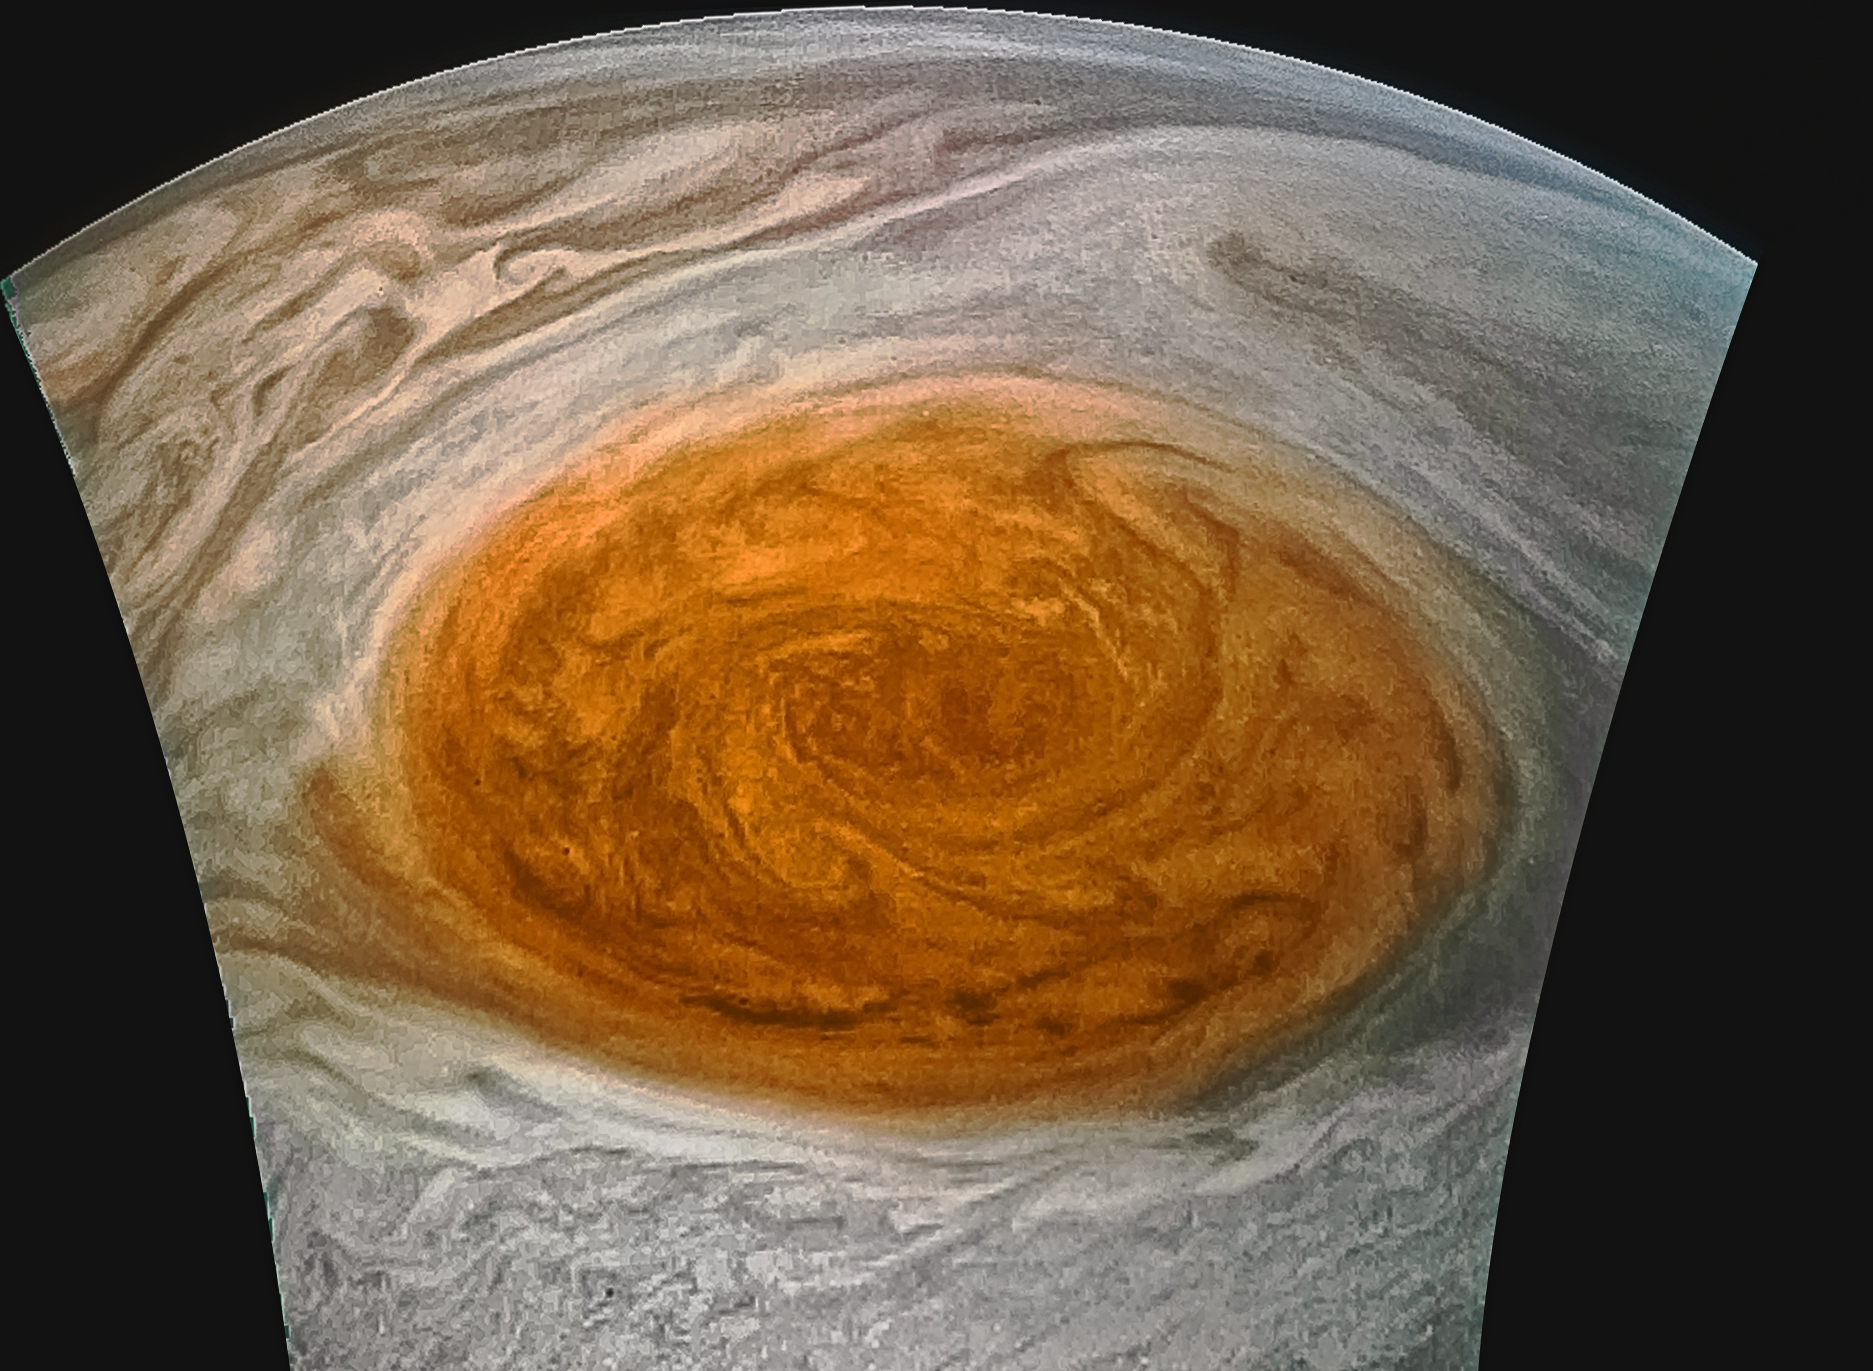 New images from Jupiter's Great Red Spot